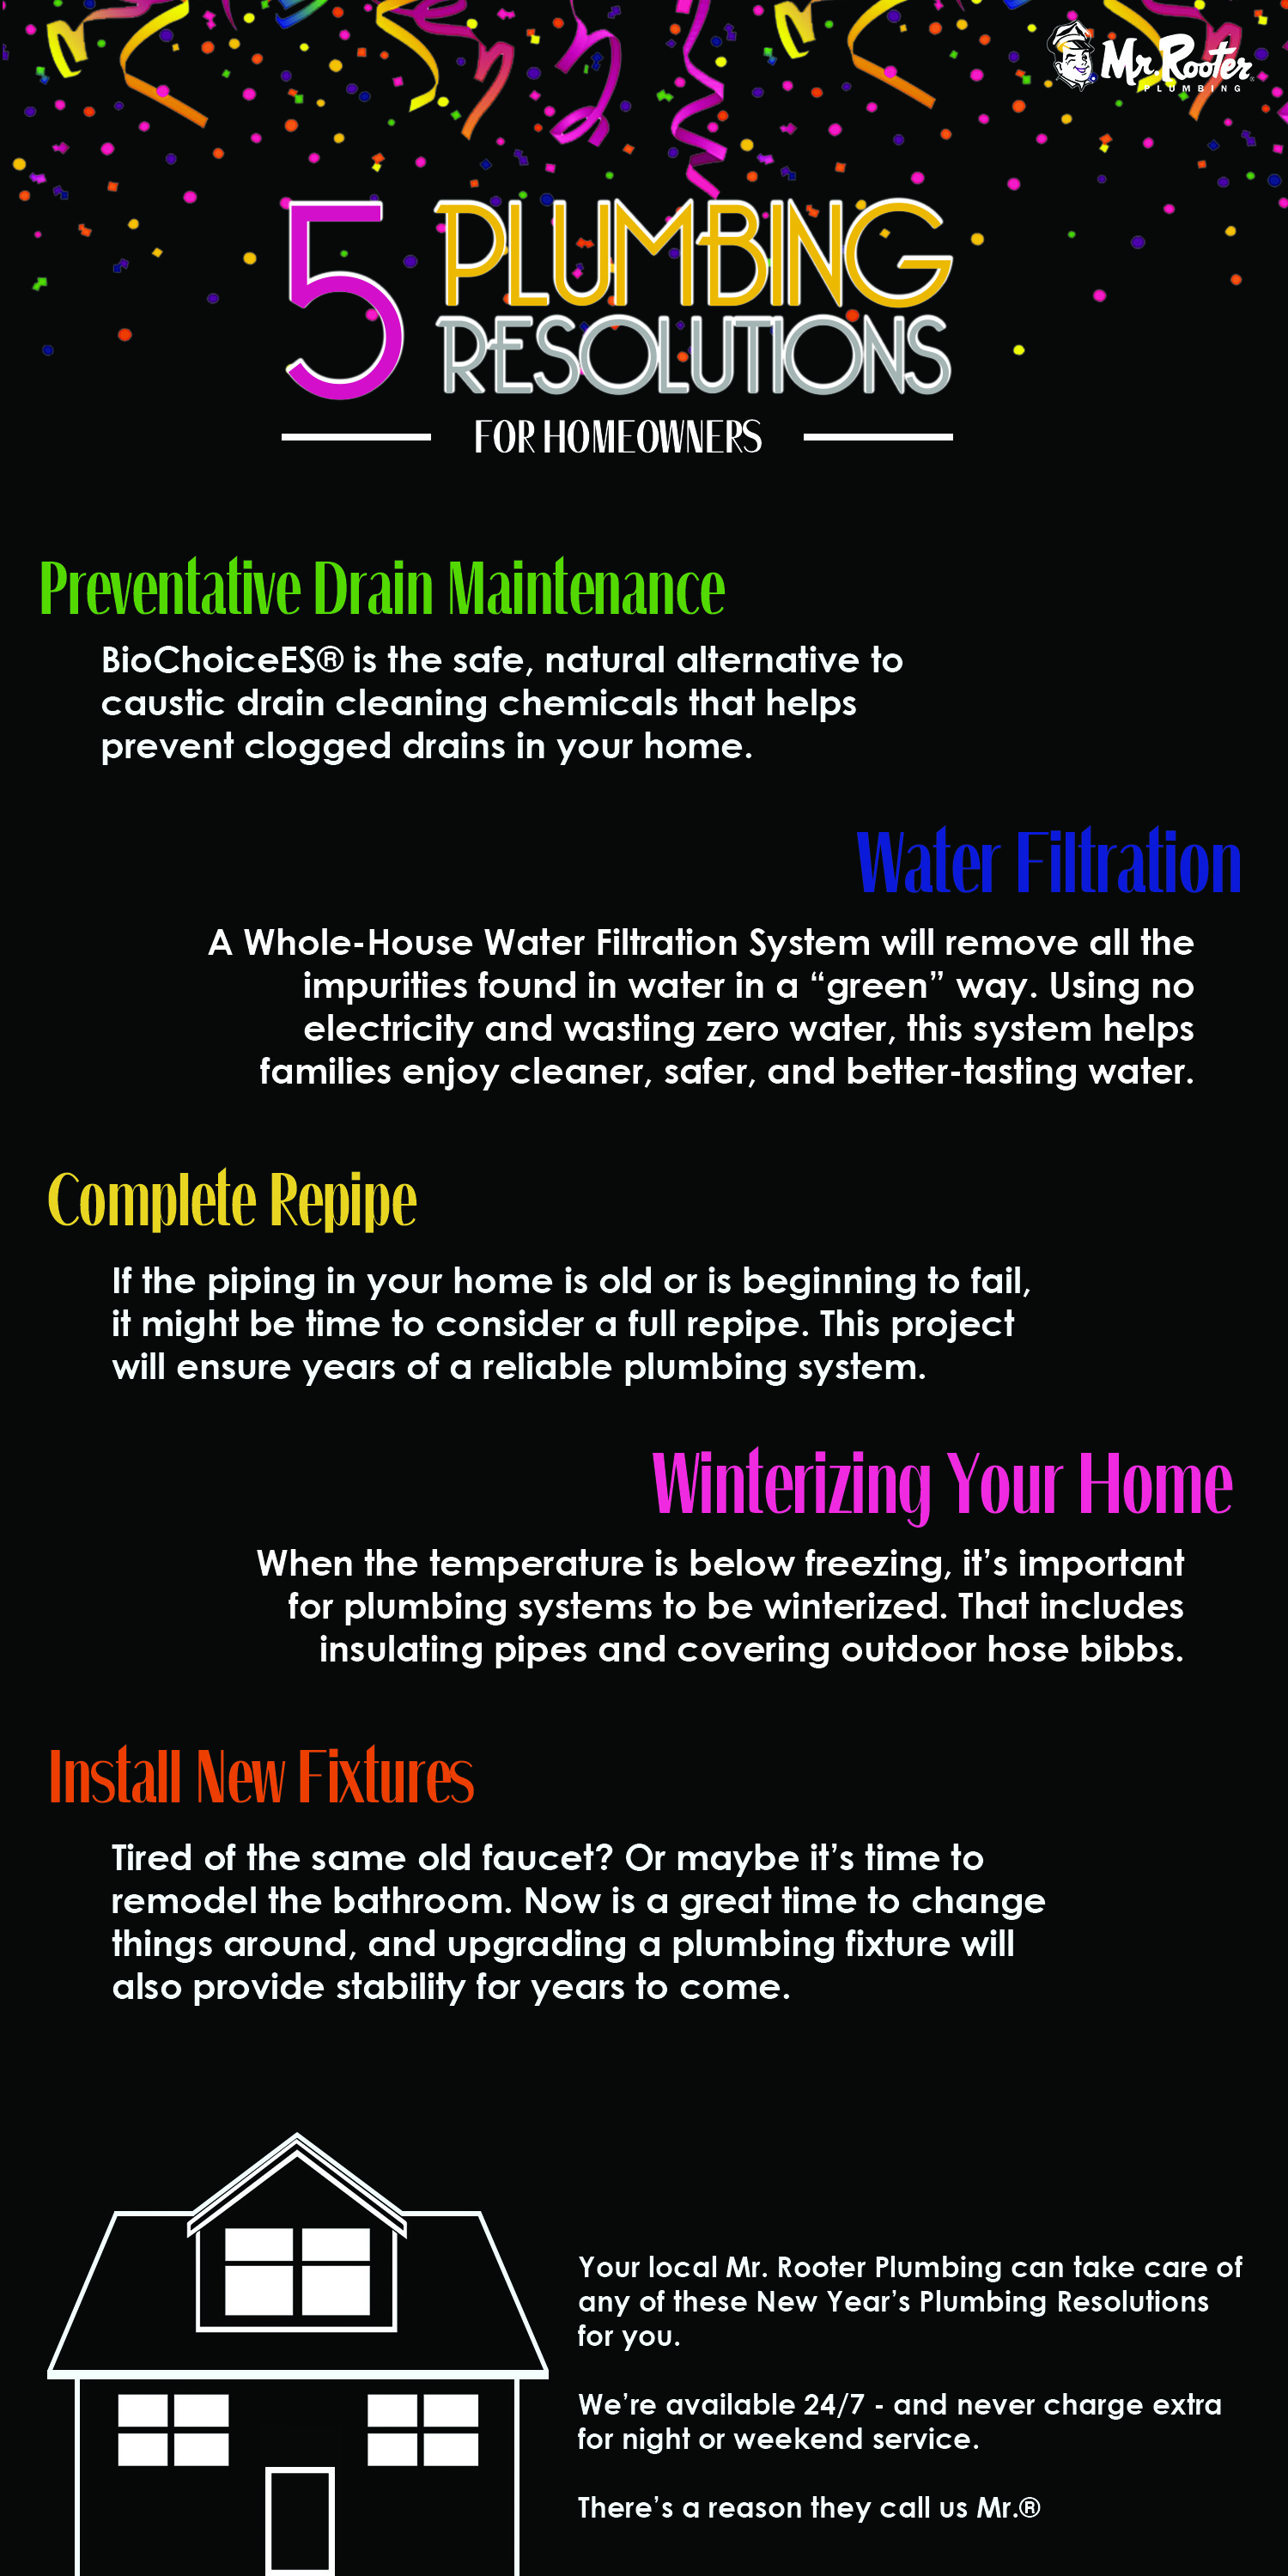 5 New Year's Resolution Plumbing Projects infographic